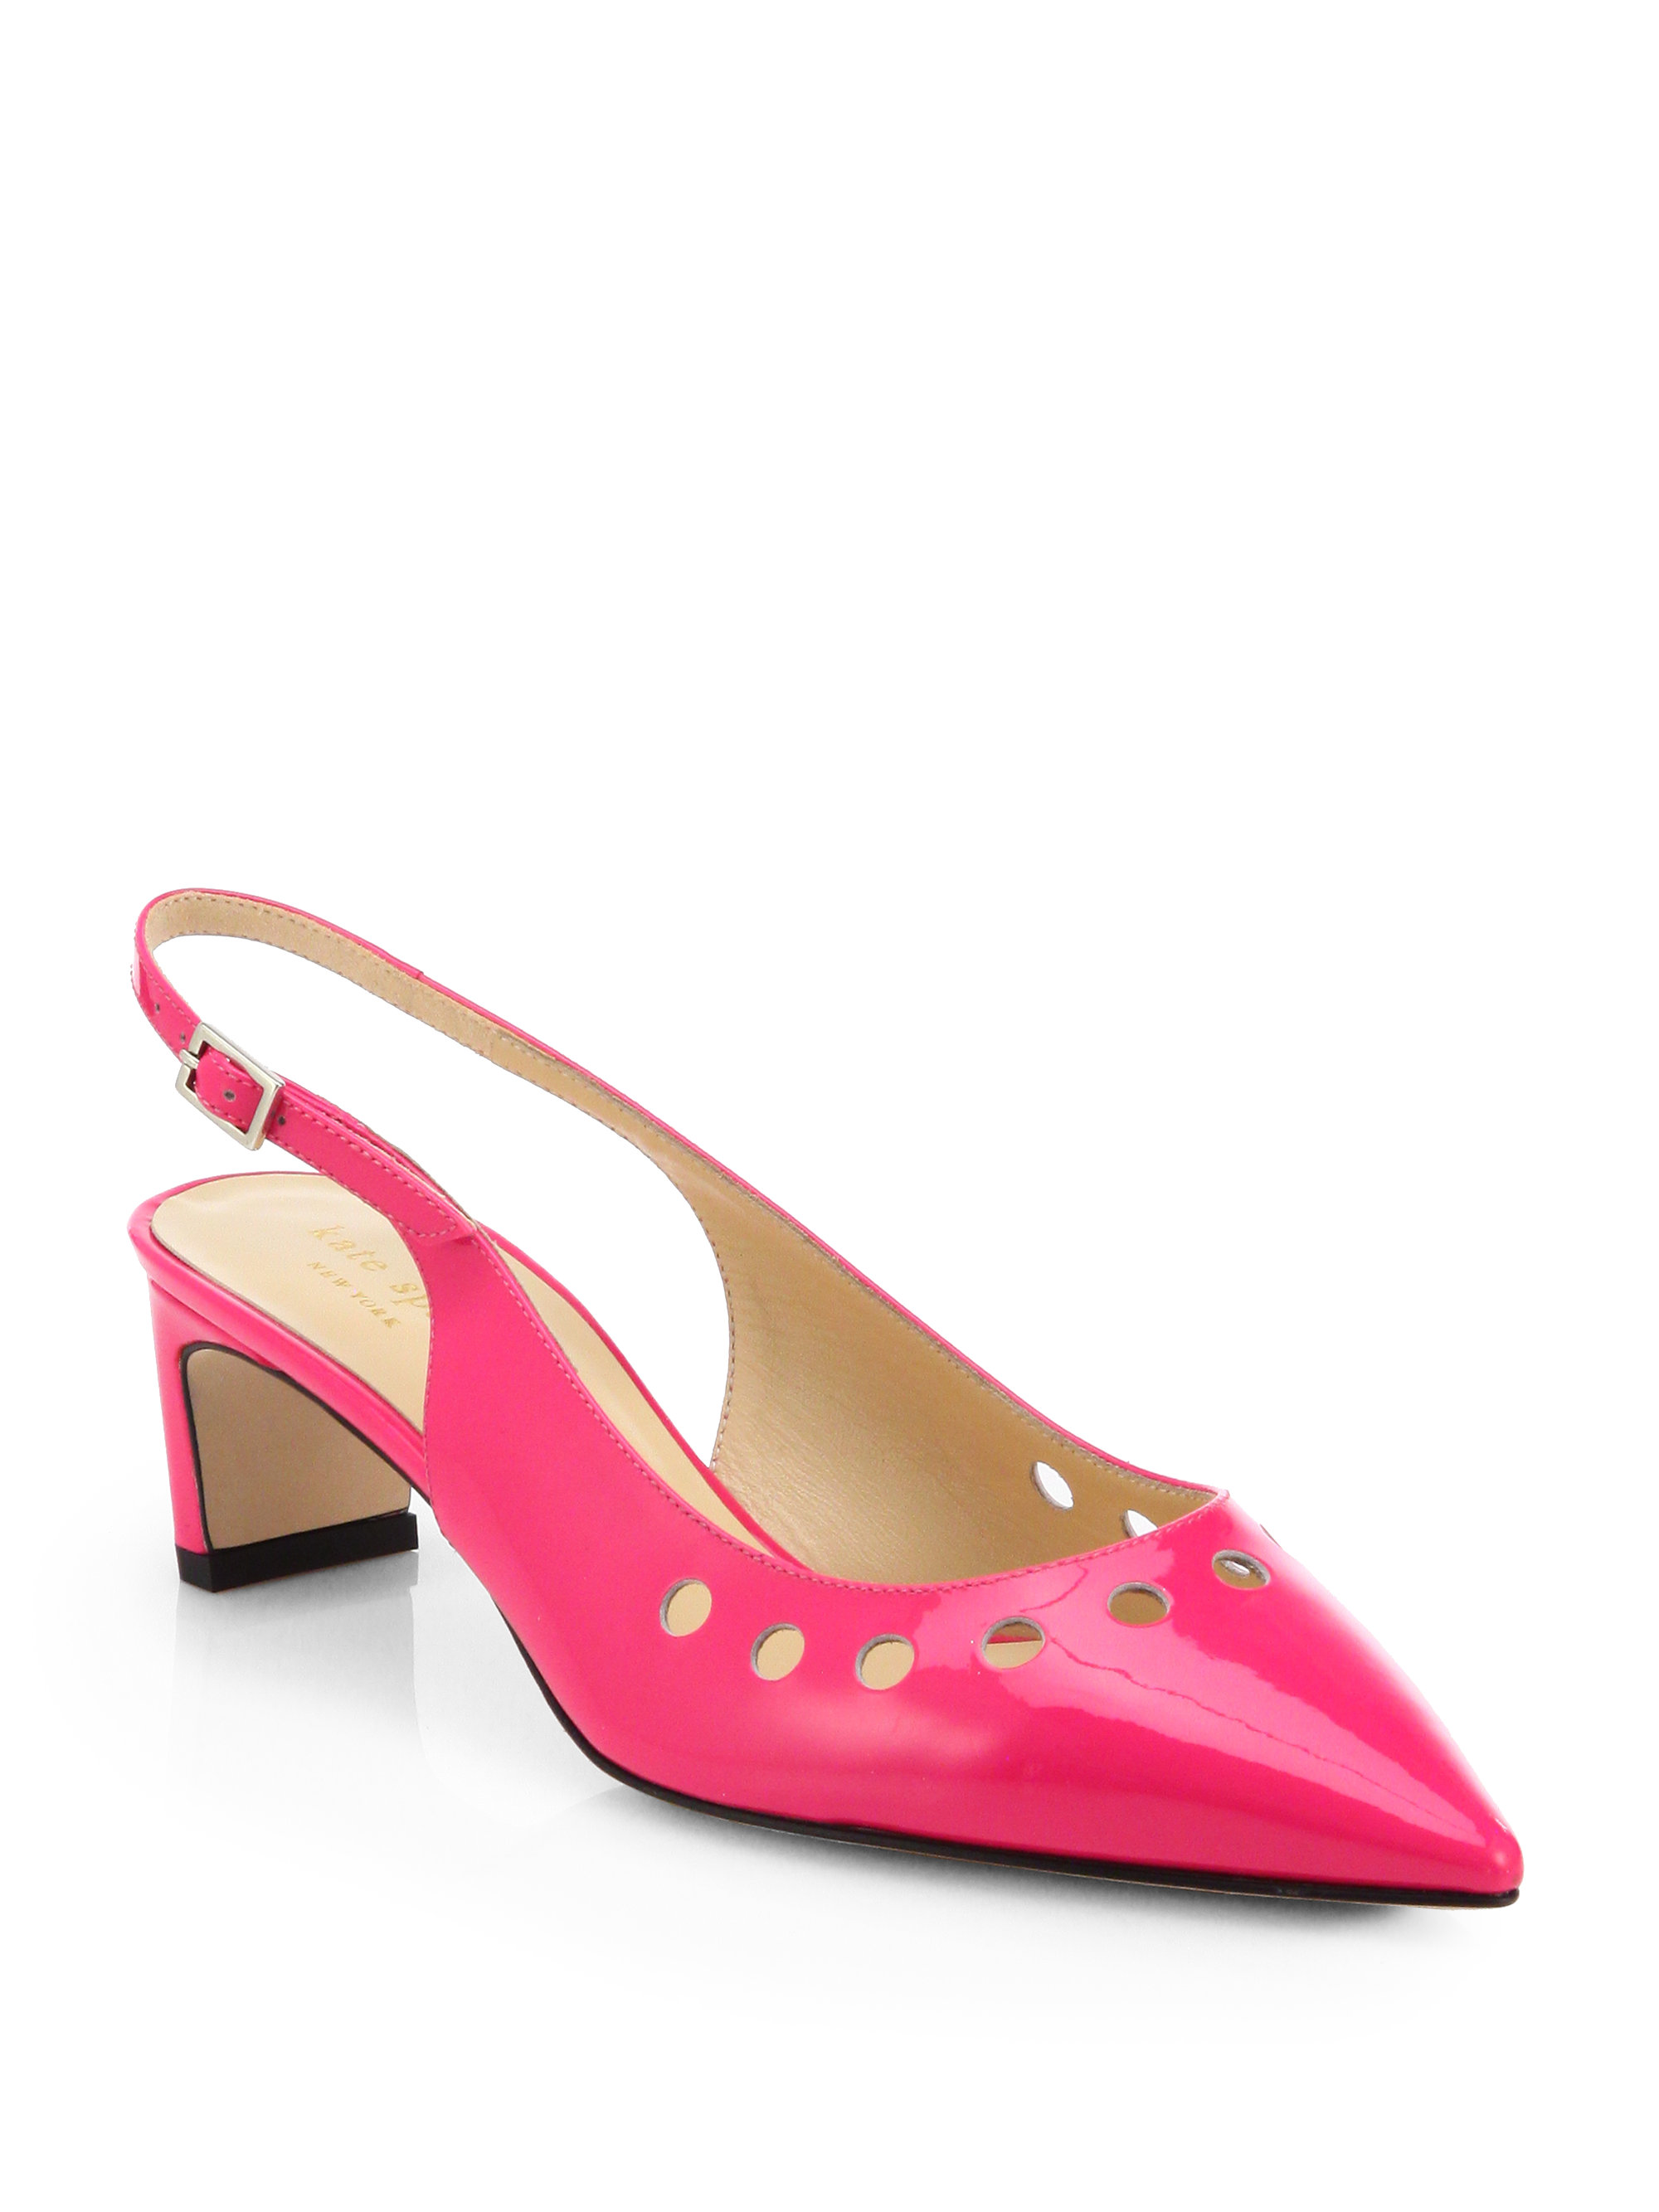 kate spade stephany patent leather slingback pumps in pink